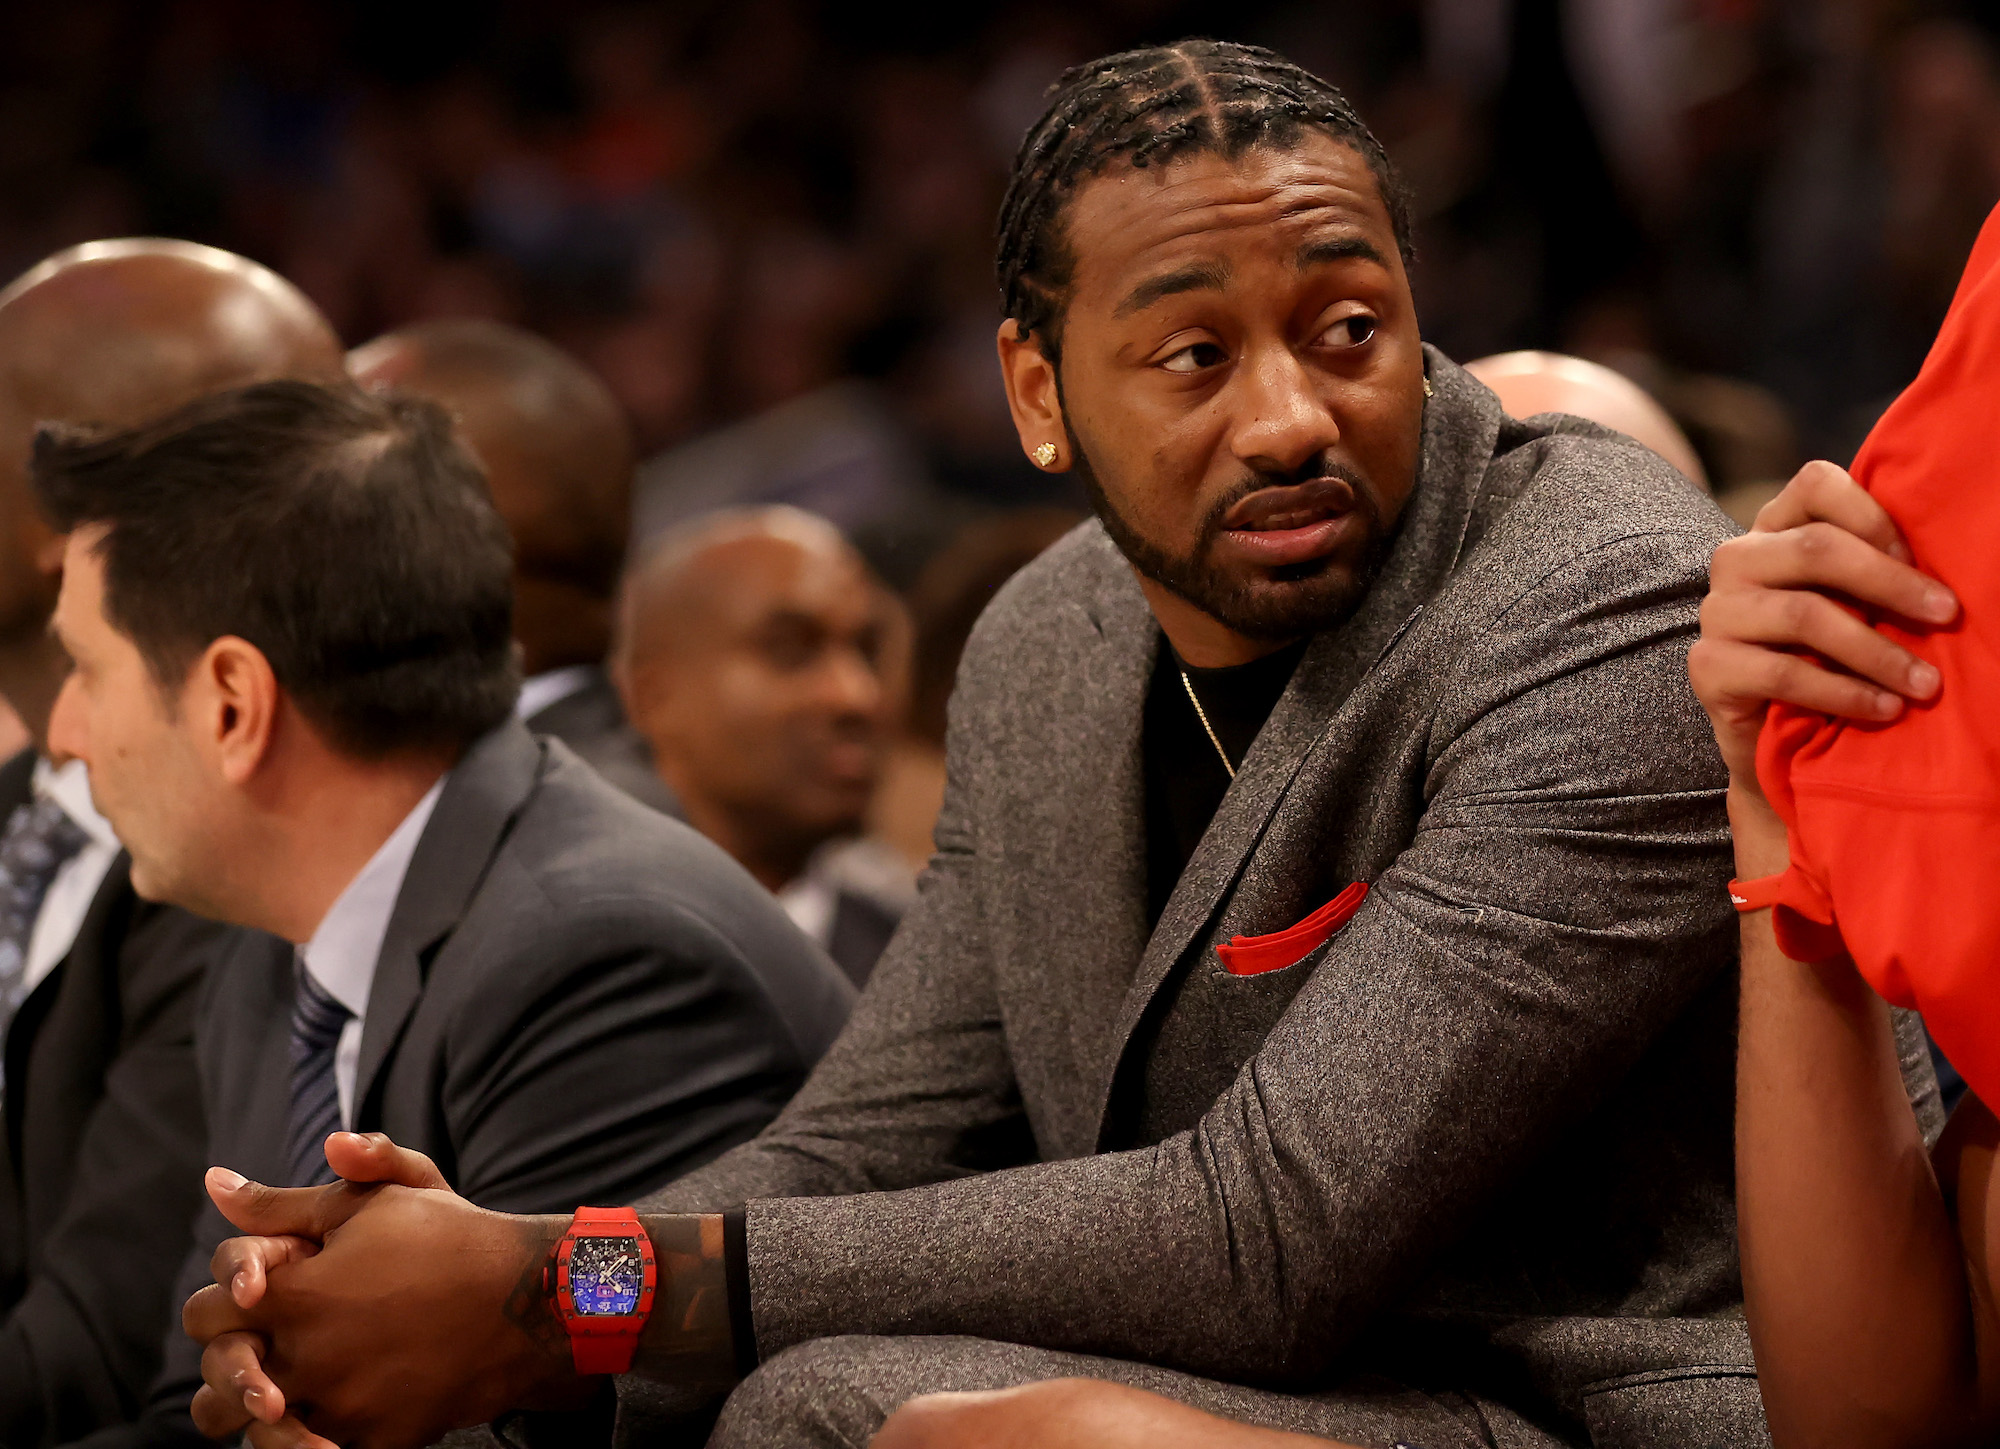 NEW YORK, NEW YORK - FEBRUARY 12: John Wall of the Washington Wizards sits on the bench in the first half against the New York Knicks at Madison Square Garden on February 12, 2020 in New York City. NOTE TO USER: User expressly acknowledges and agrees that, by downloading and or using this photograph, User is consenting to the terms and conditions of the Getty Images License Agreement. (Photo by Elsa/Getty Images)